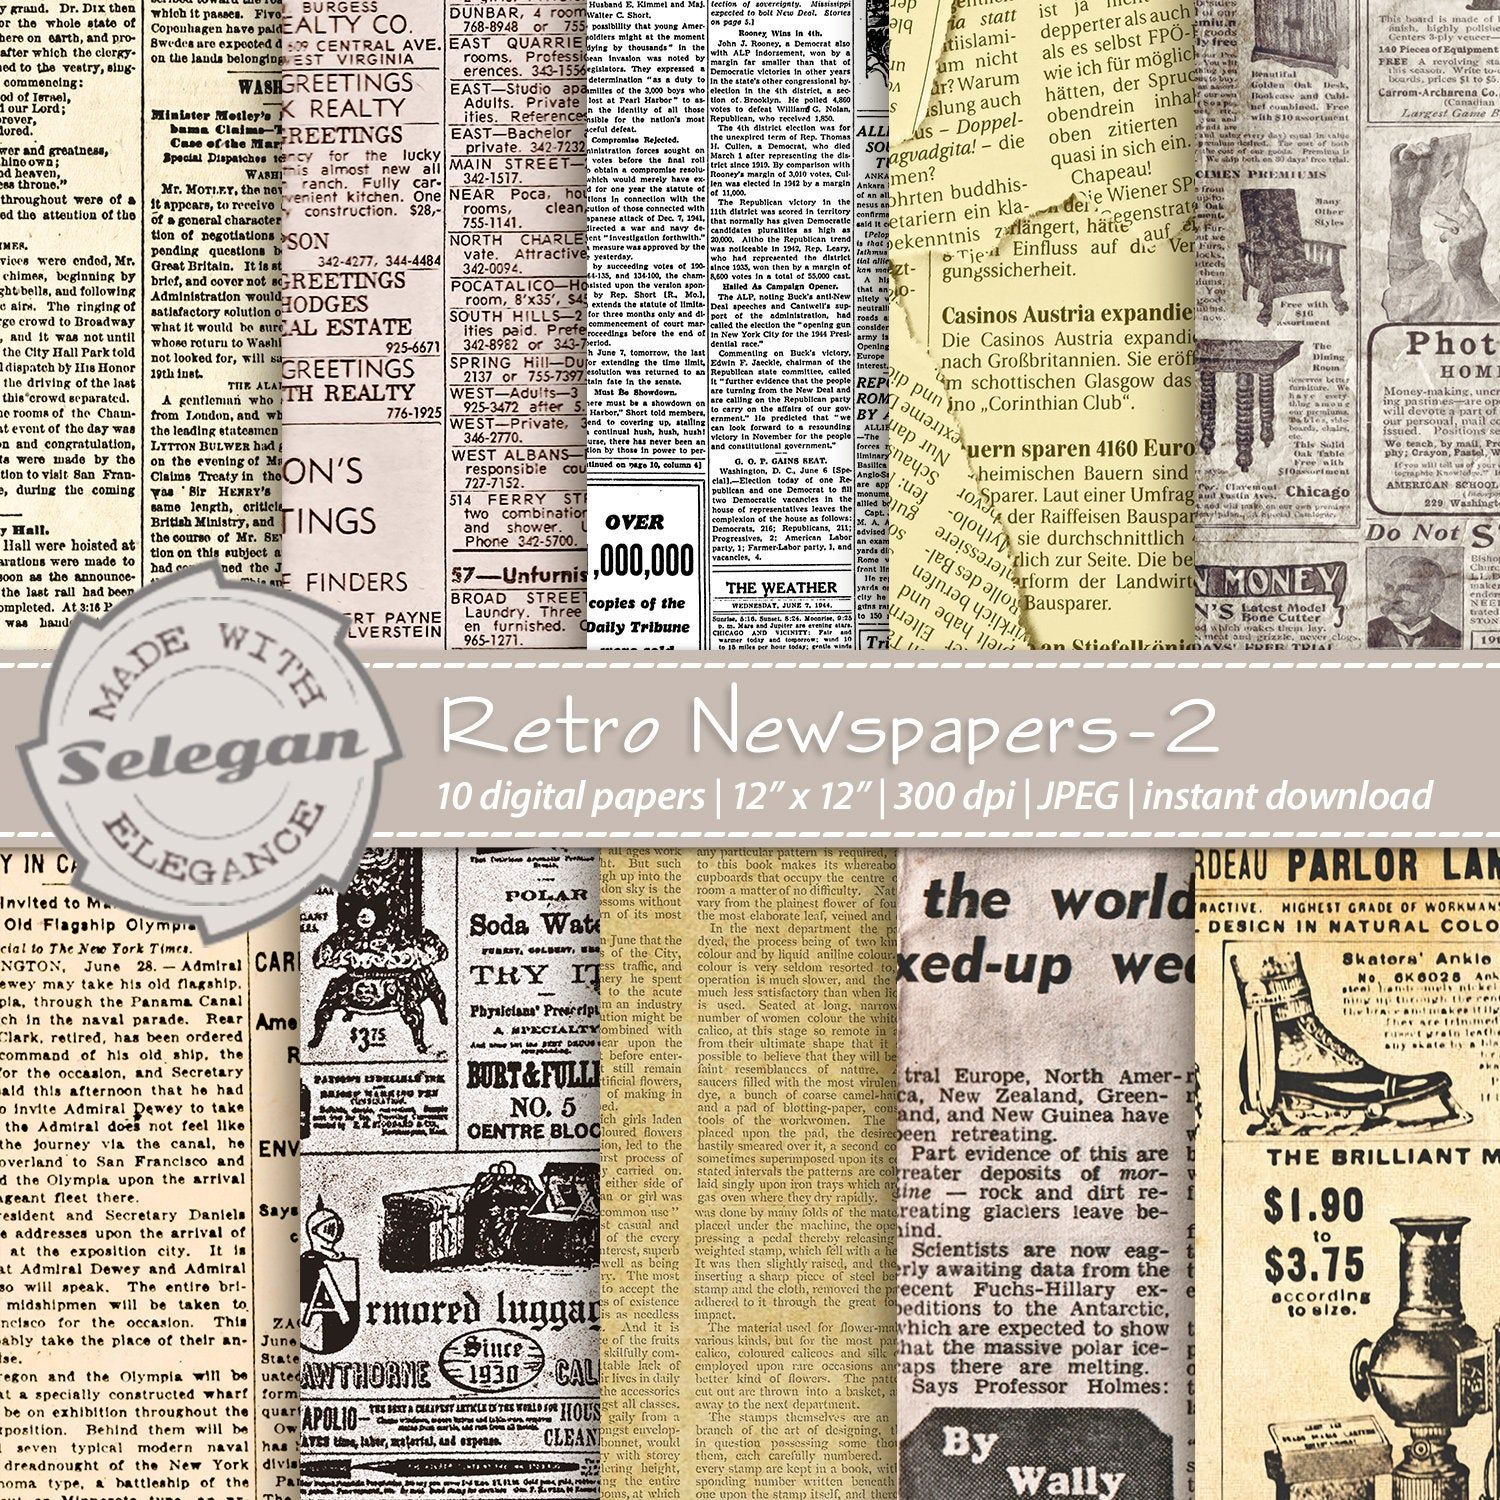 Retro Newspapers 2 Old Magazine Vintage Journal Digital Etsy In 2020 Vintage Journal Digital Scrapbook Paper Old Magazines